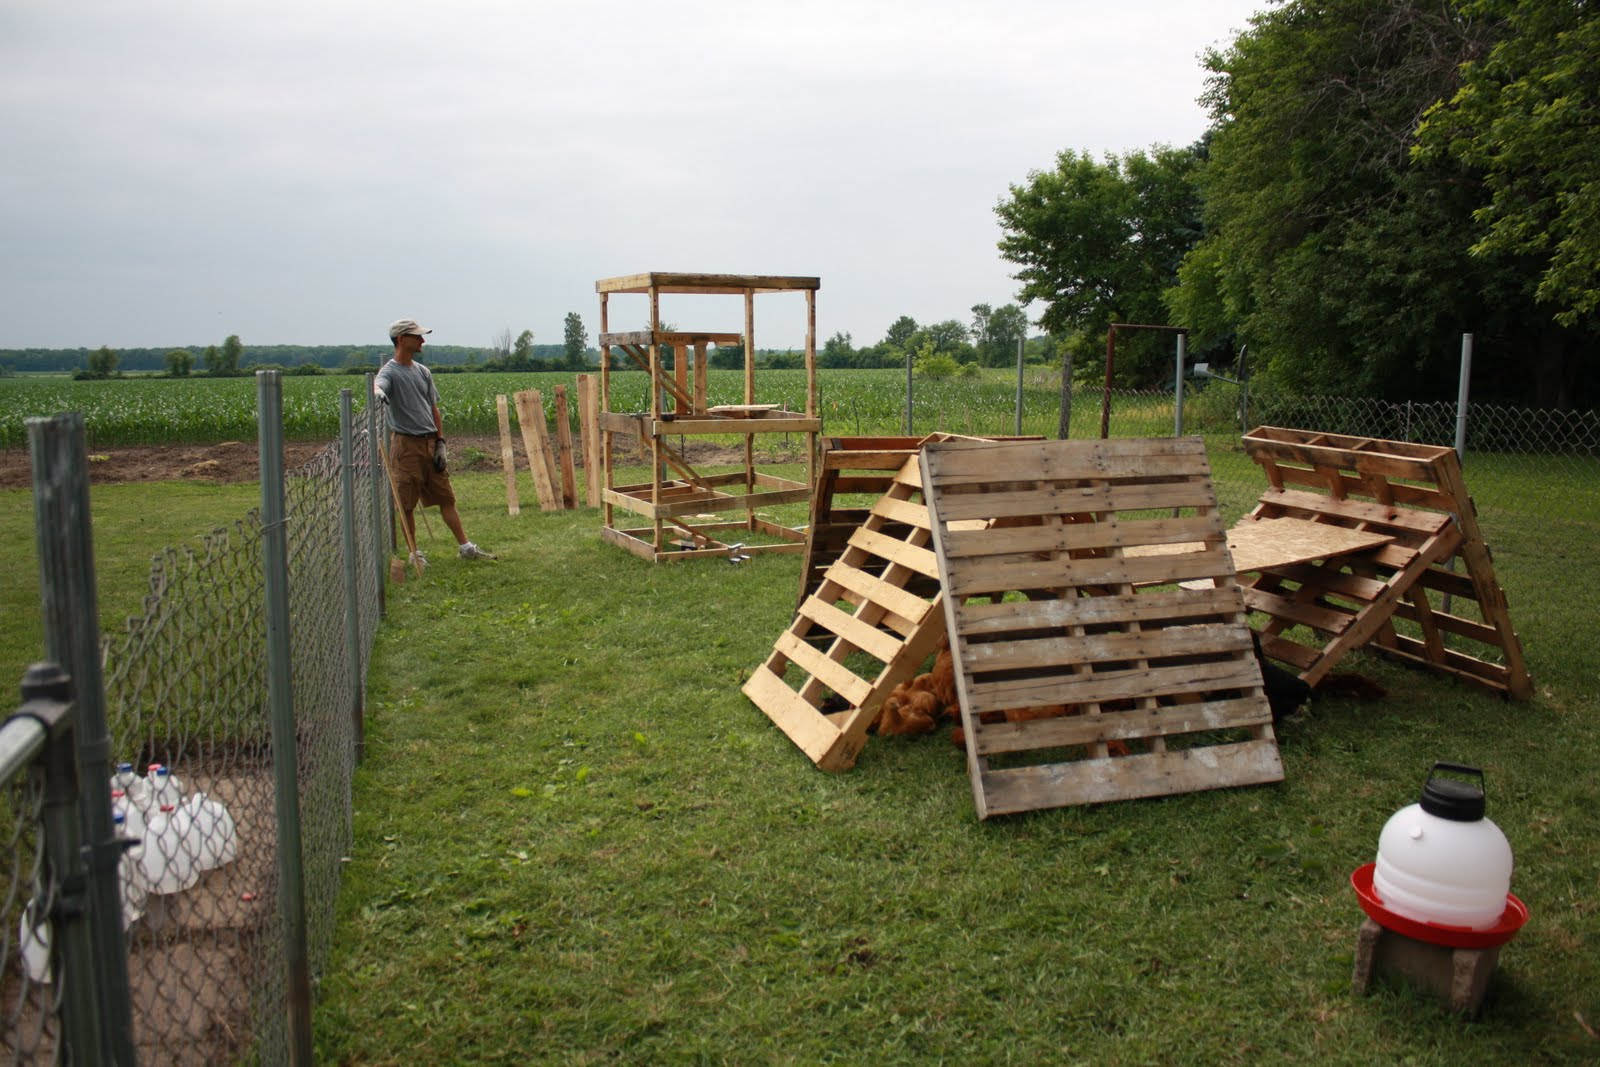 Michigan roys homemade chicken coop for Homemade chicken house